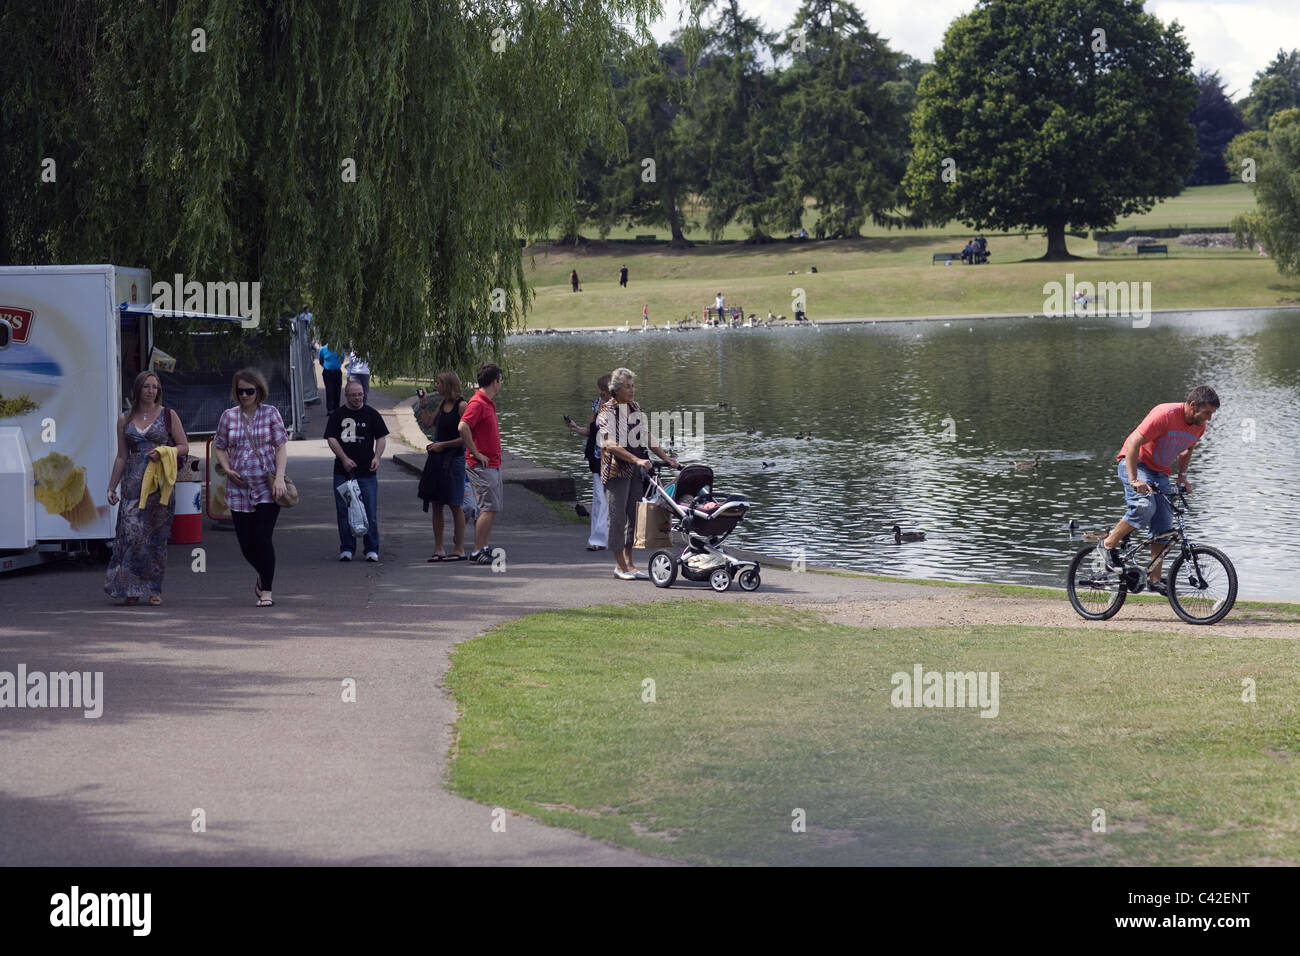 Verulamium Park. St. Albans. Hertfordshire. Home Counties; England. Summer weekend use of the park. - Stock Image